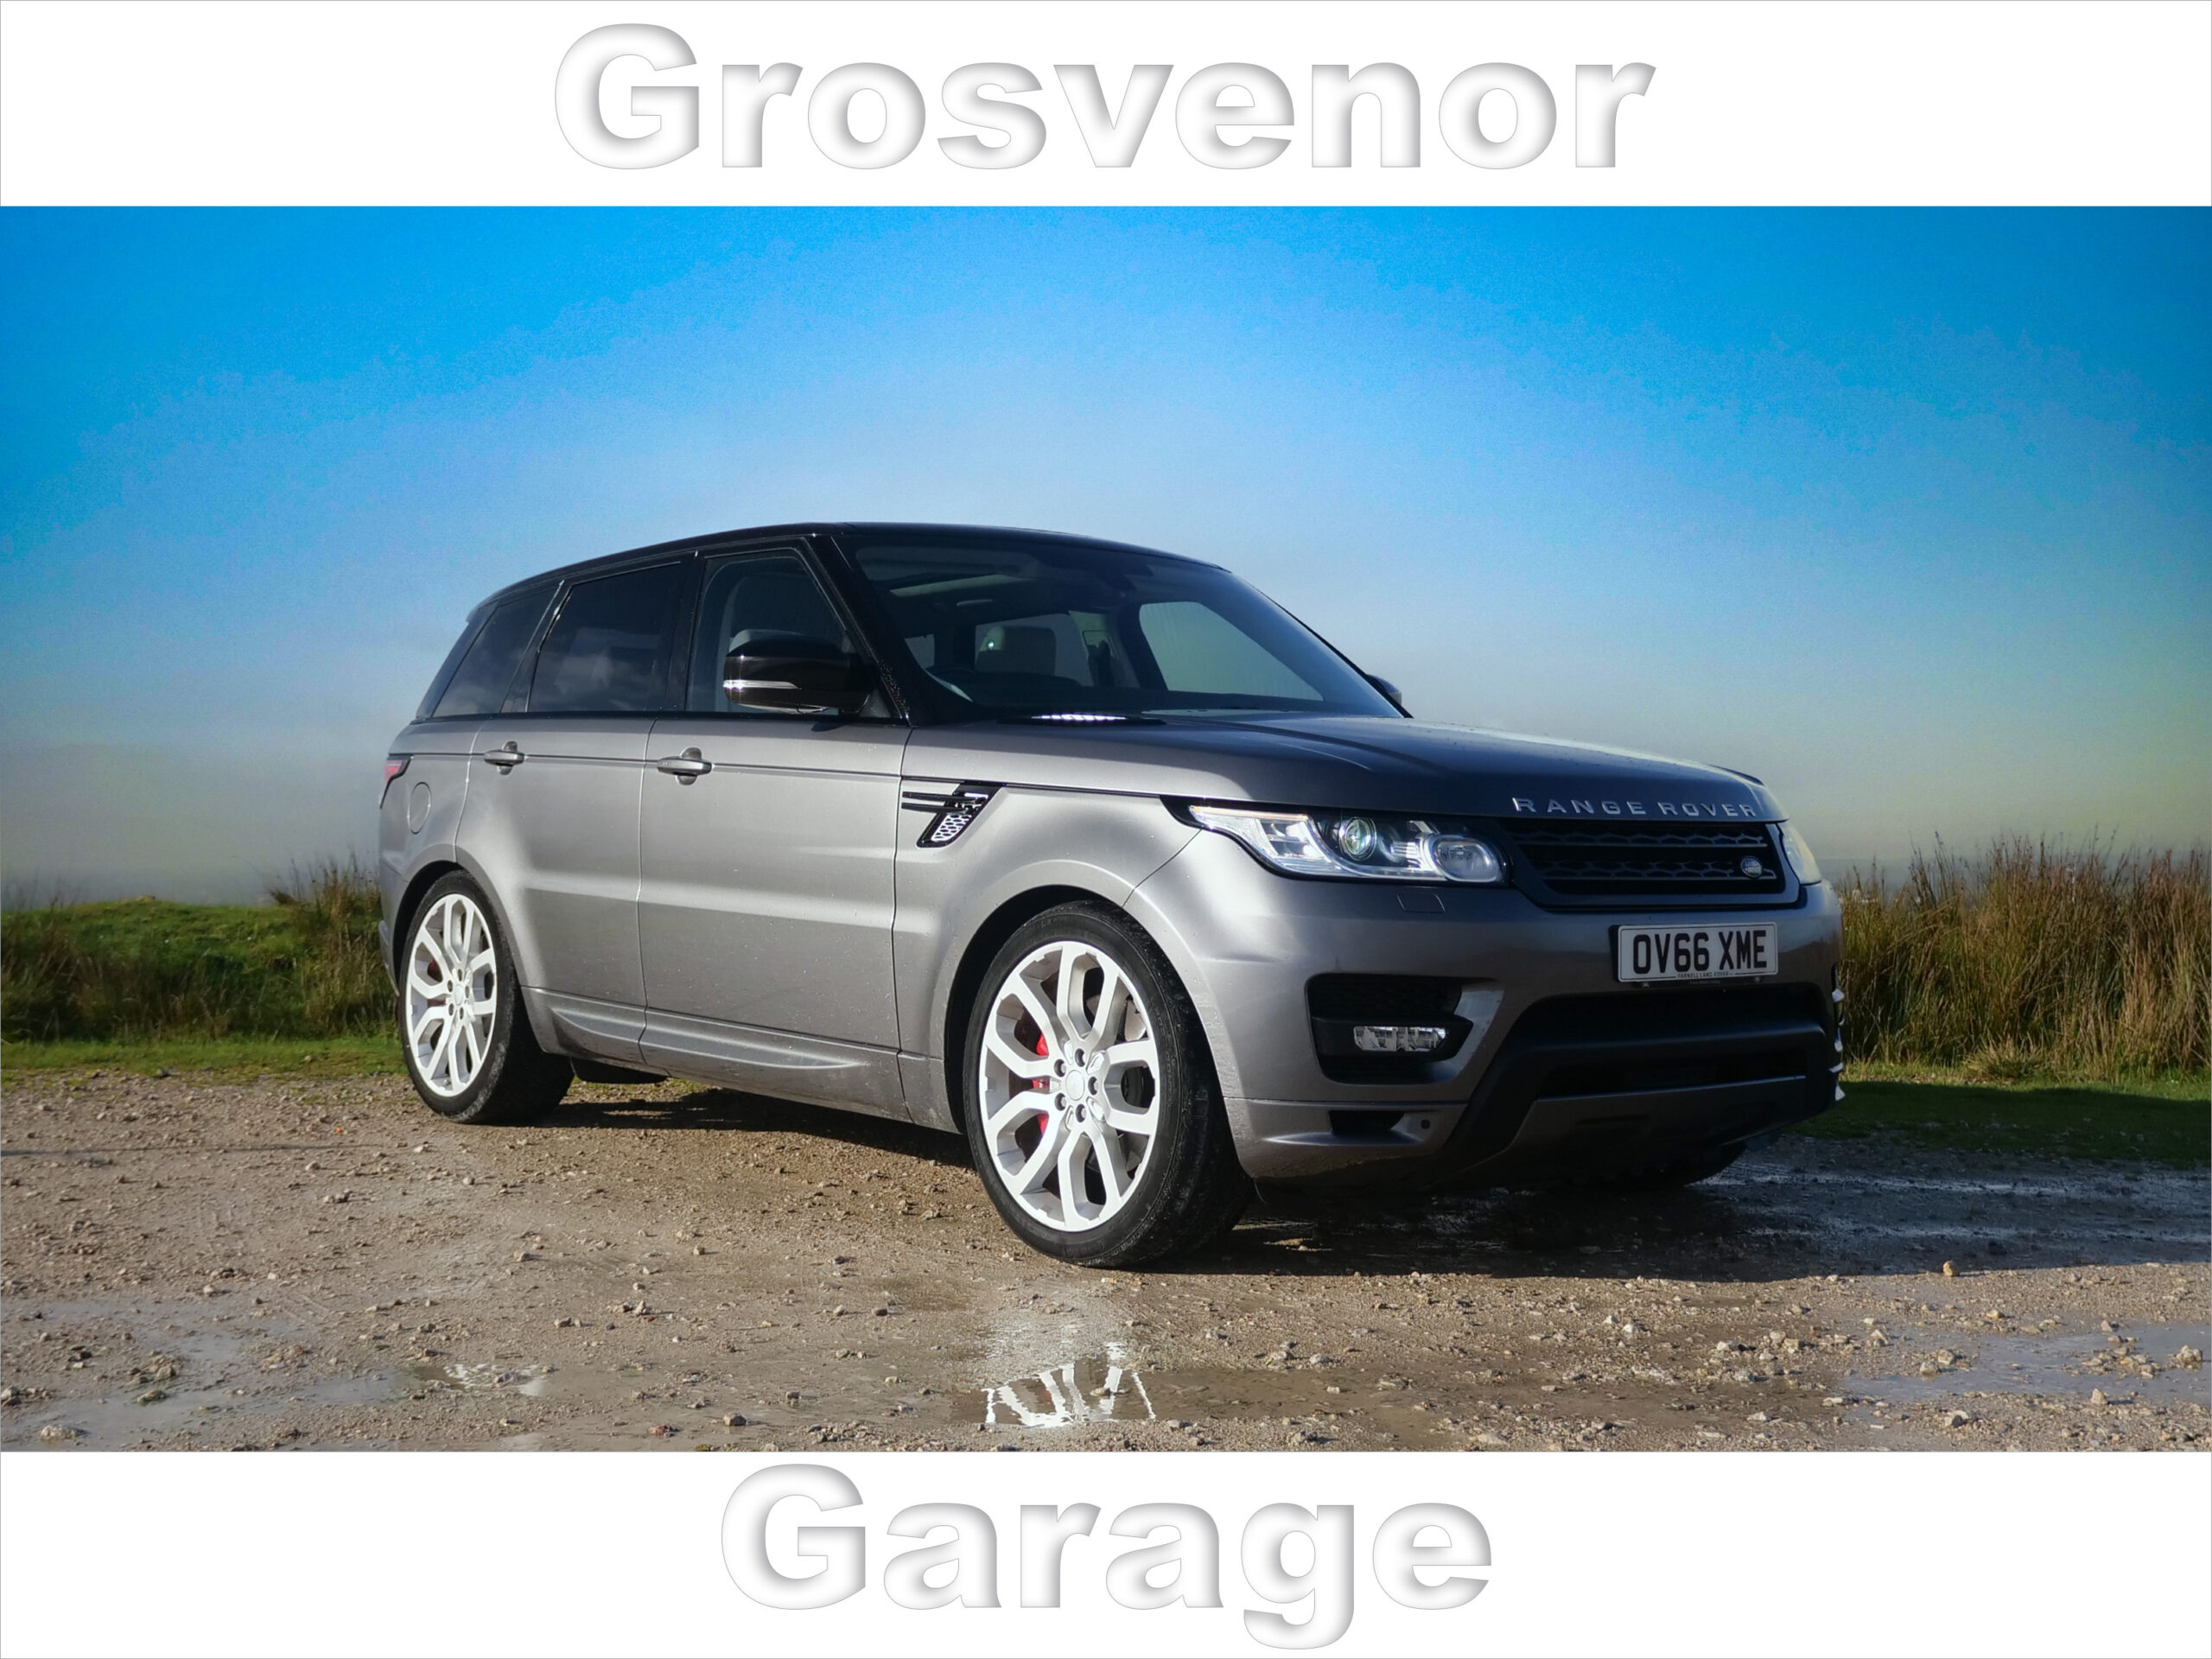 2016 (66) LAND ROVER RANGE ROVER SPORT 3.0 SDV6 AUTOBIOGRAPHY DYNAMIC 5DR AUTOMATIC